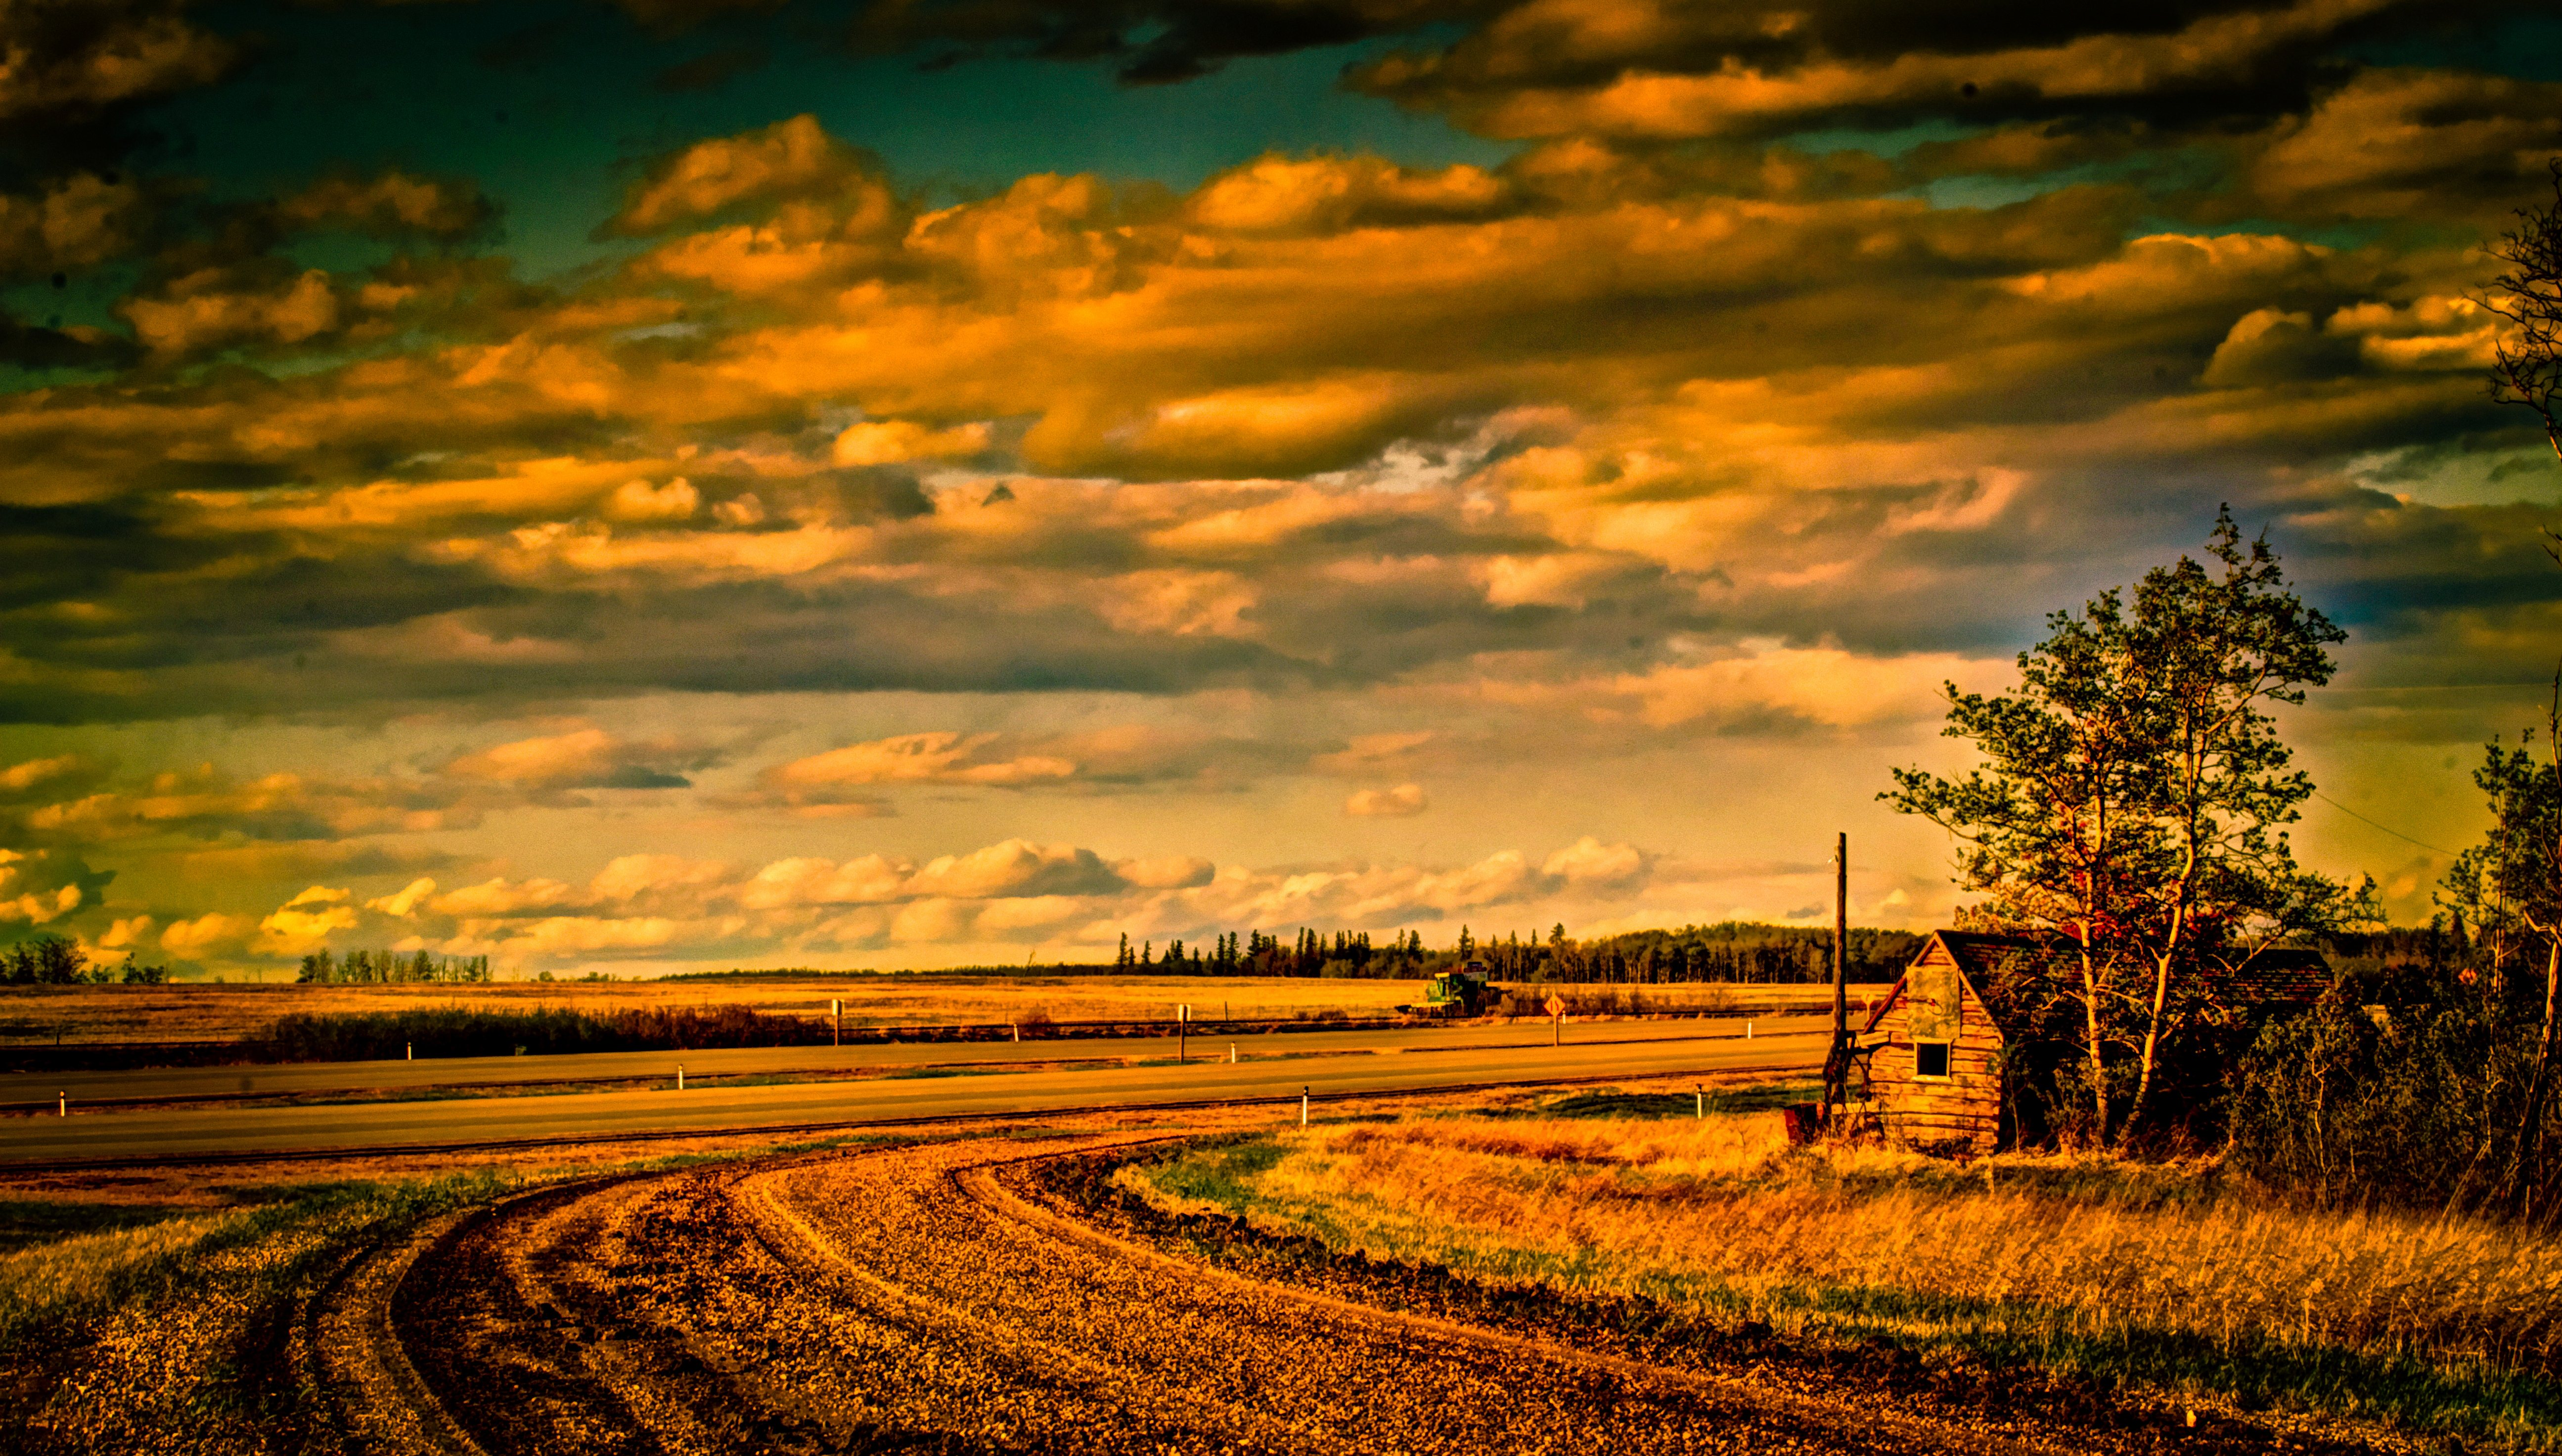 Hd Farm Wallpapers Posted By Samantha Simpson